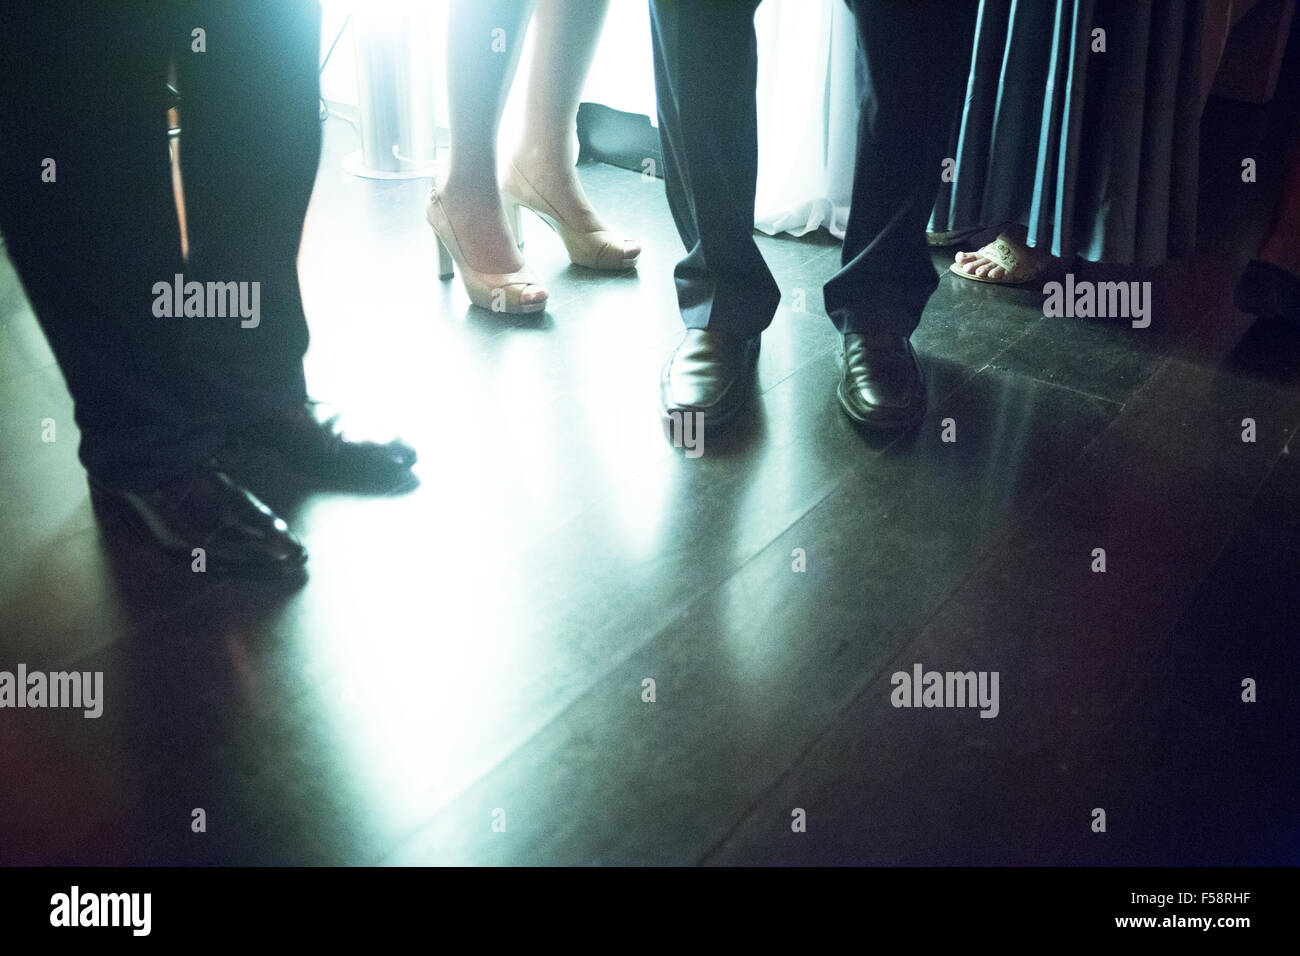 Legs of young lady wearing high heels shoes and men in suits ...